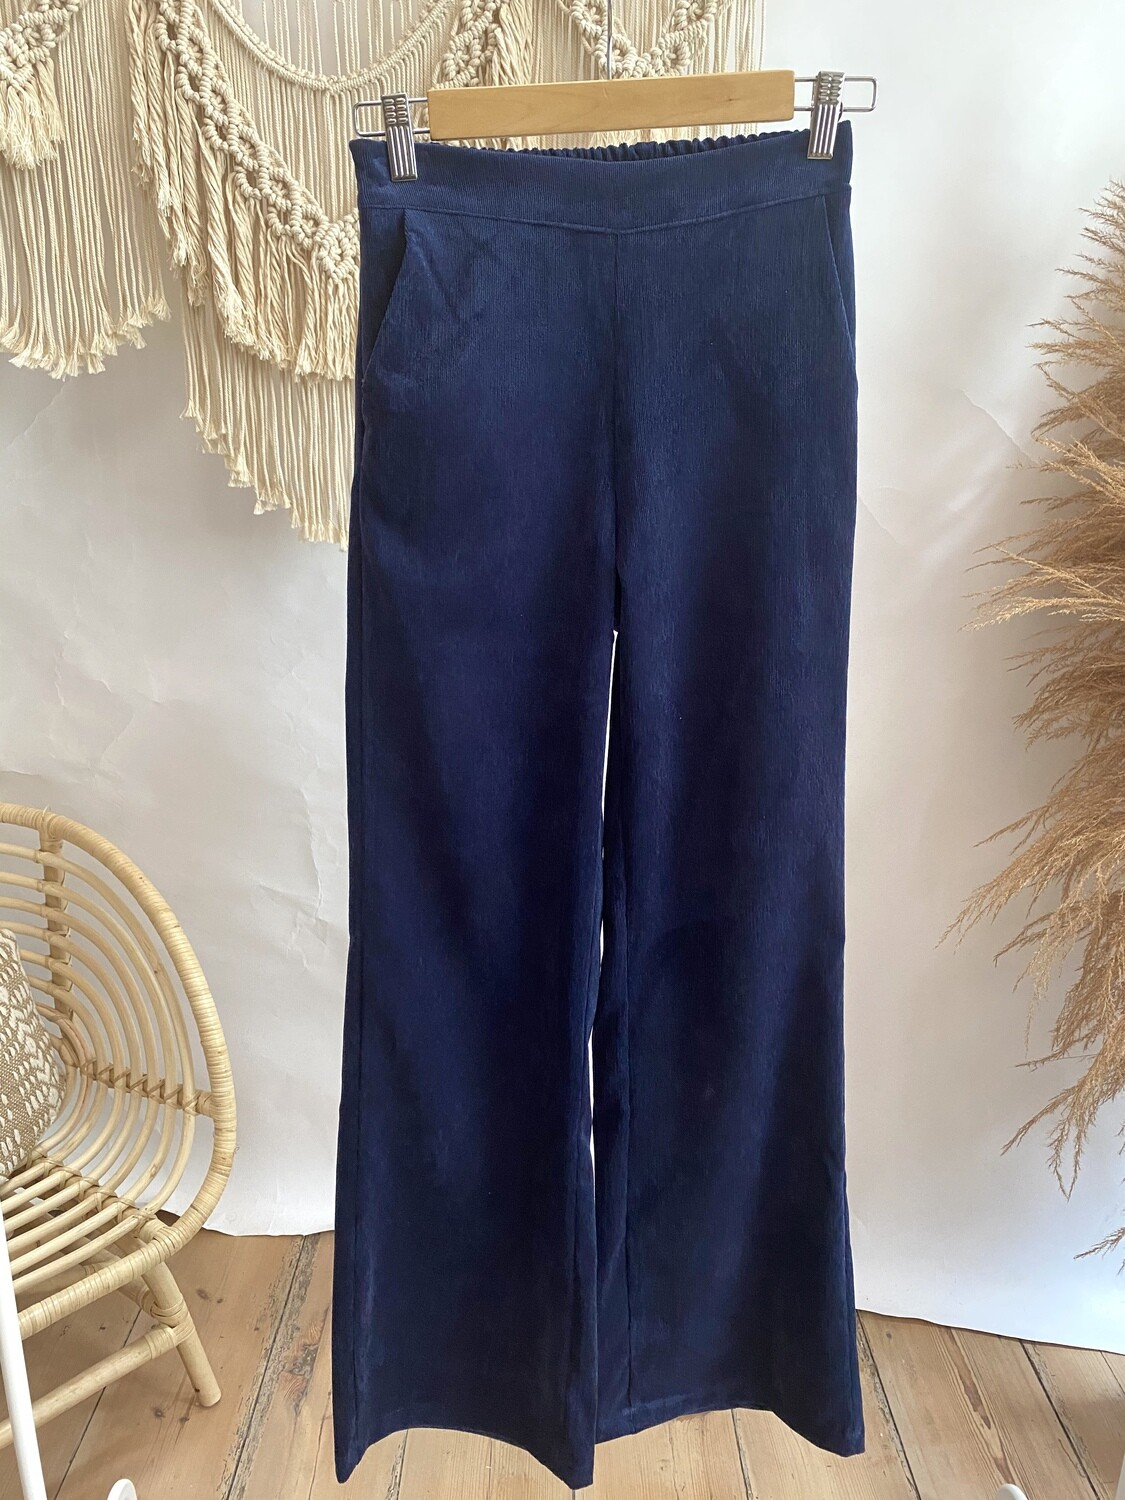 Pants Charro Dark Blue